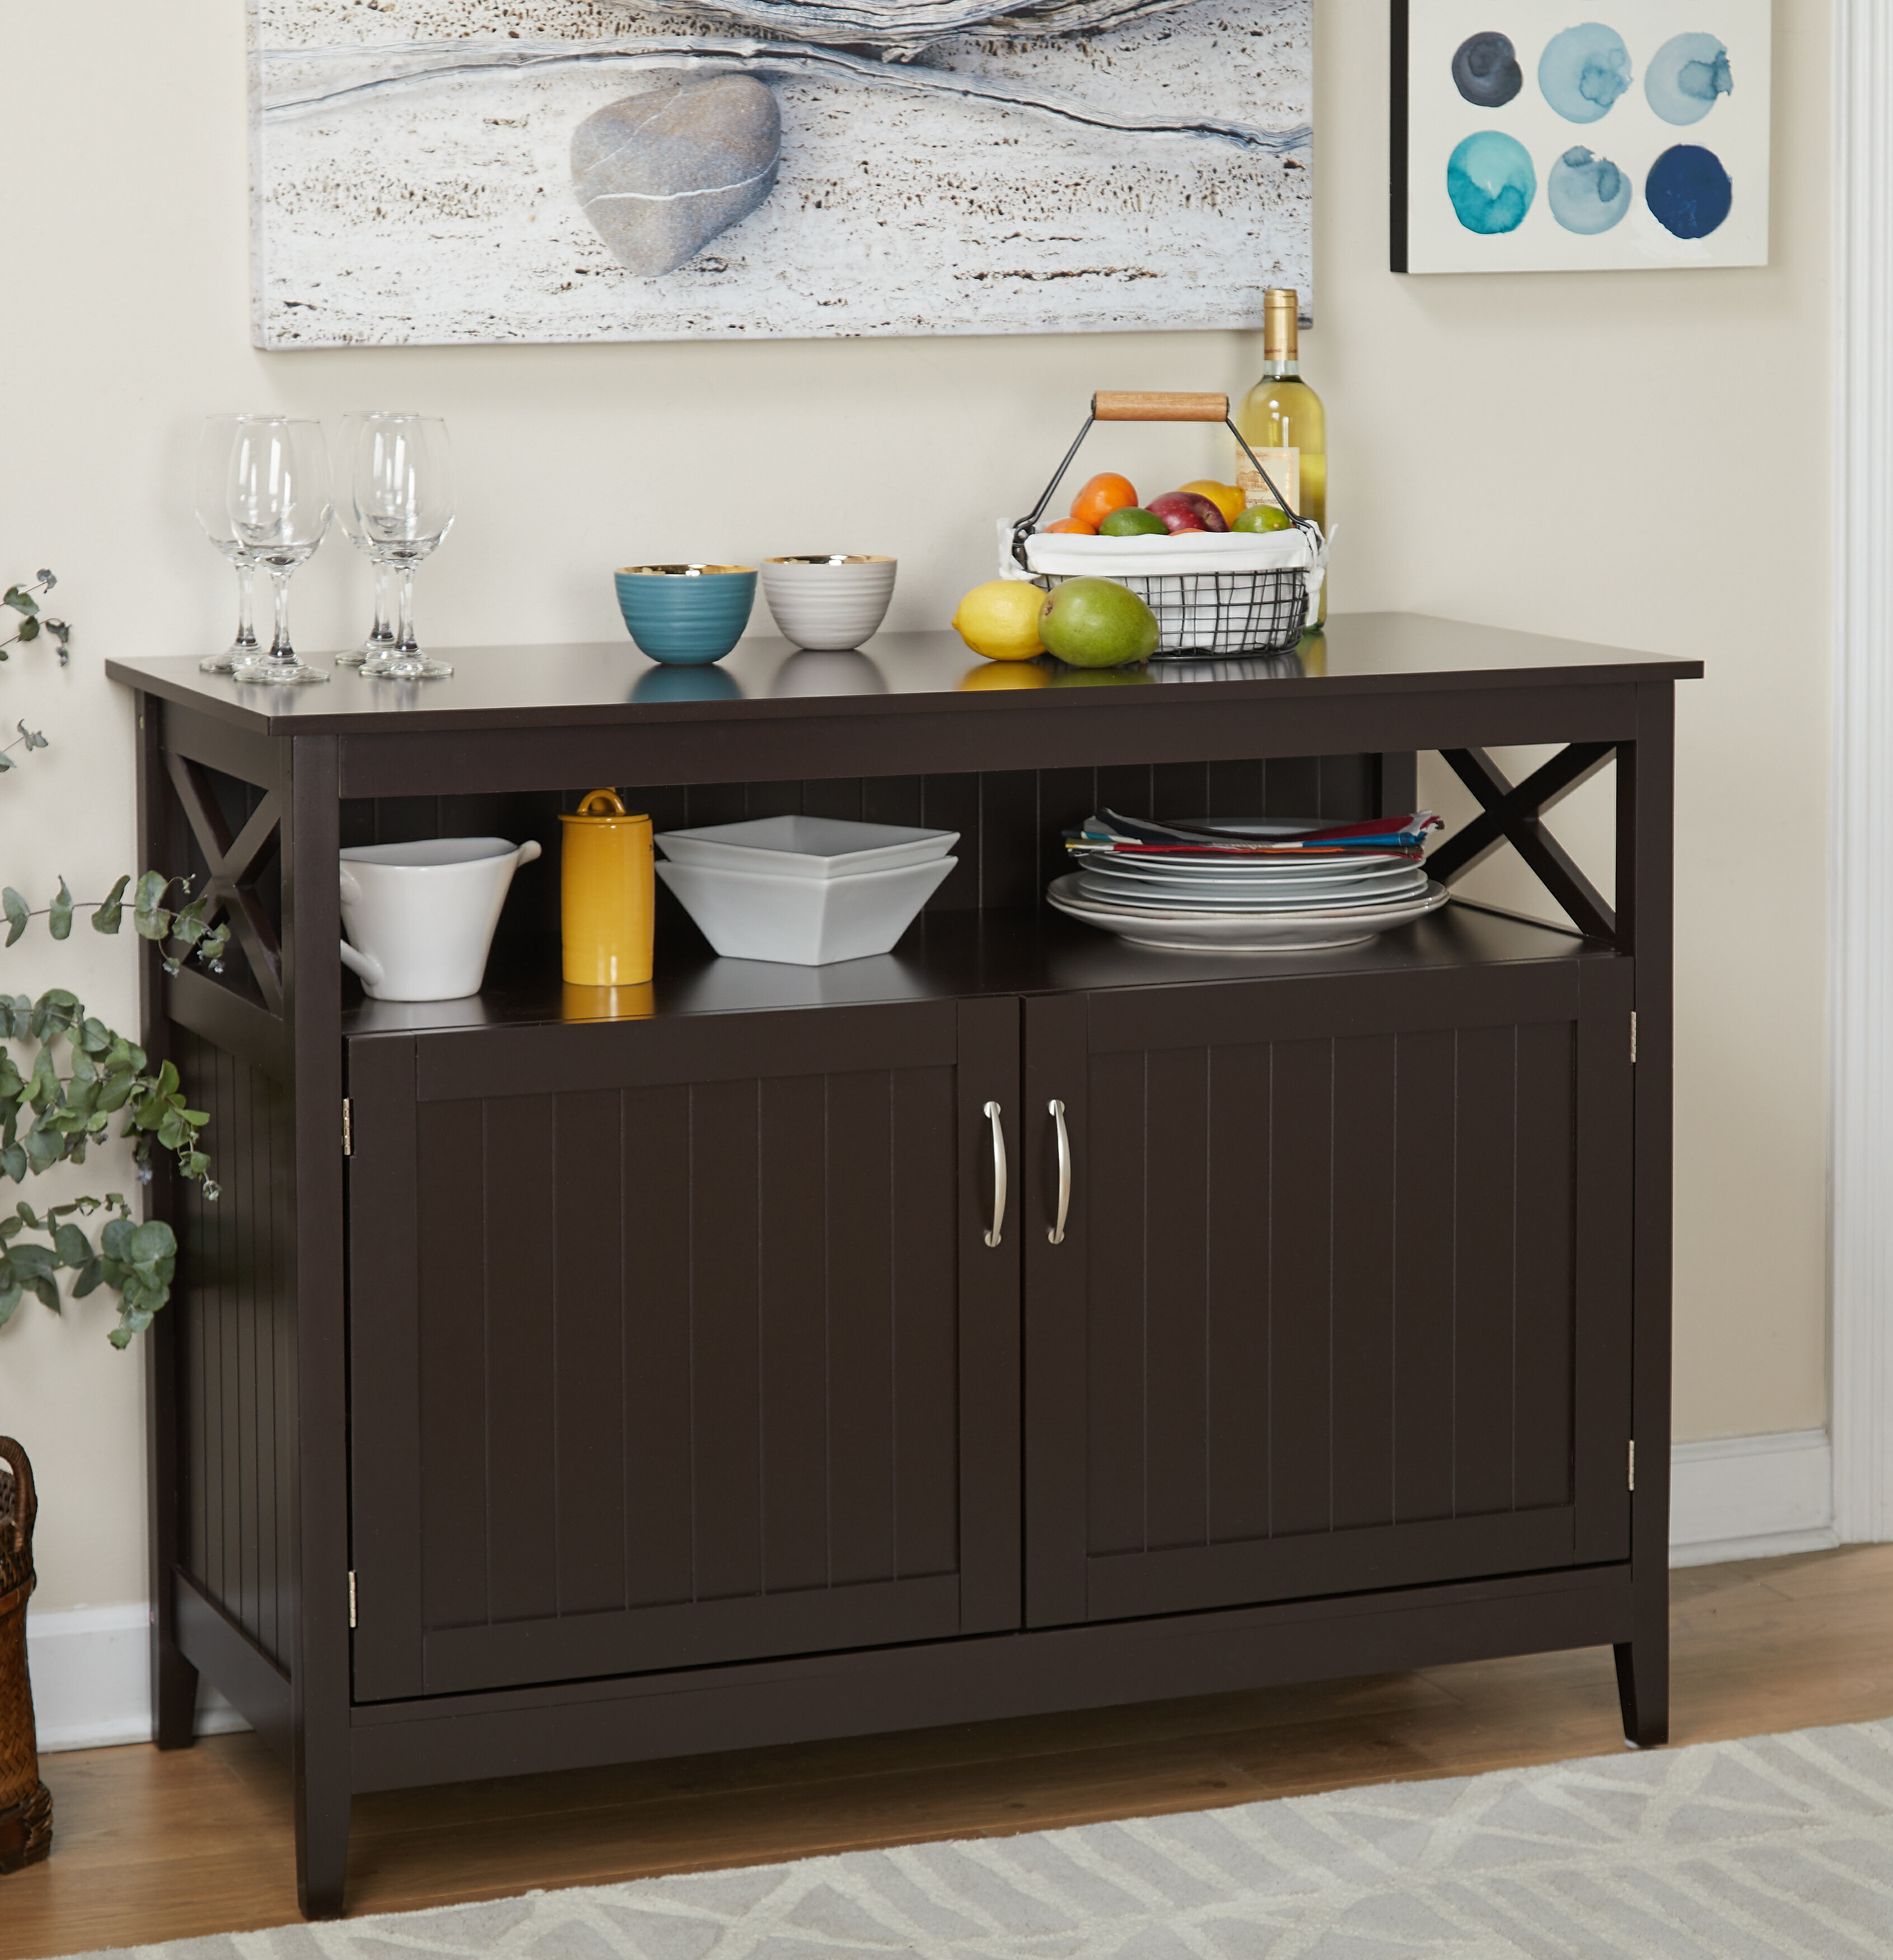 Sensational Cabinets Youll Love In 2019 Wayfair Interior Design Ideas Greaswefileorg